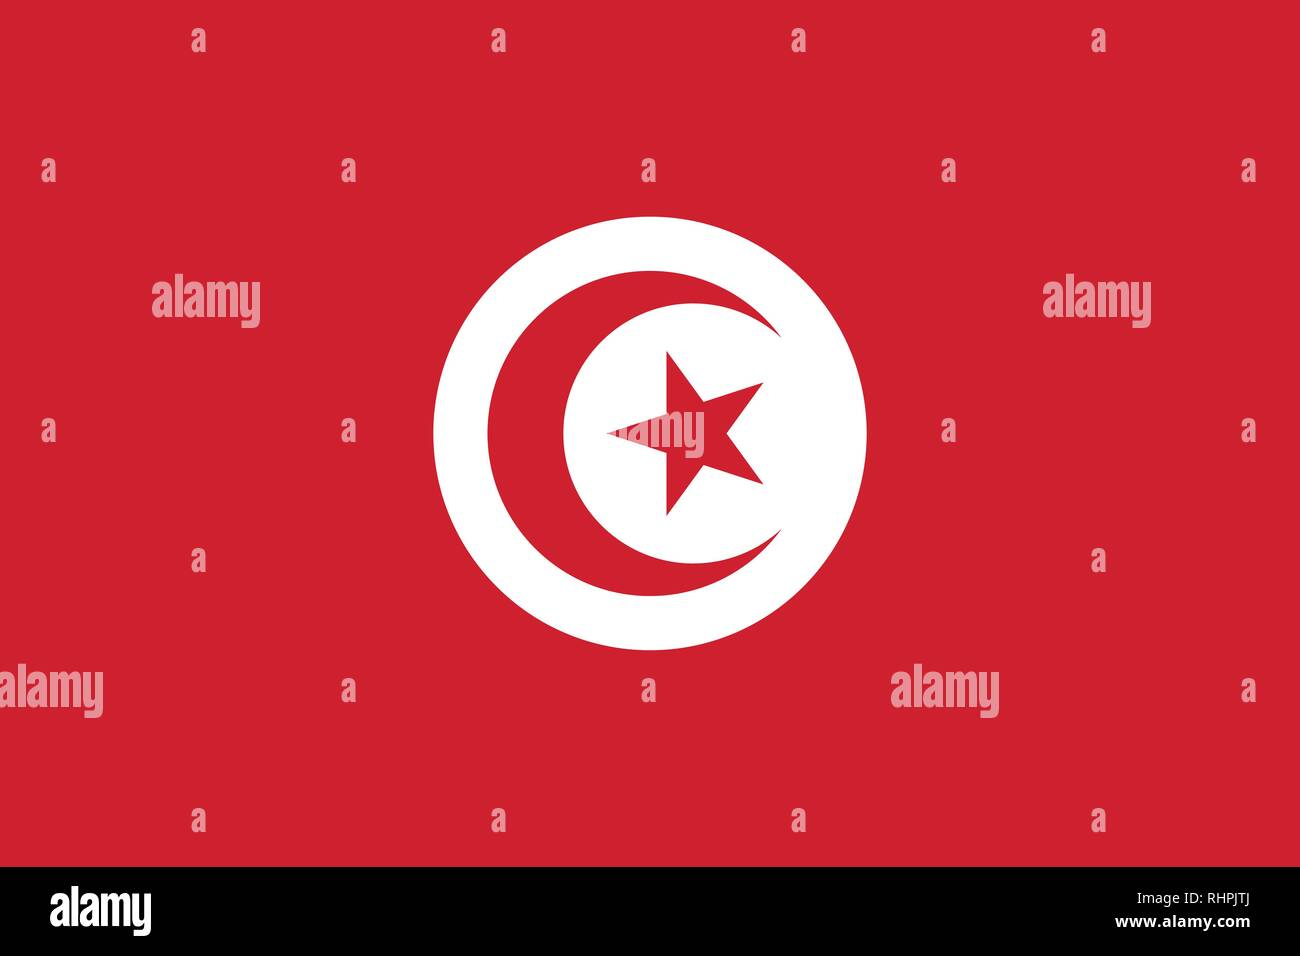 Vector image for Tunisia flag. Based on the official and exact Tunisian flag dimensions (3:2) & colors (186C and White) - Stock Vector